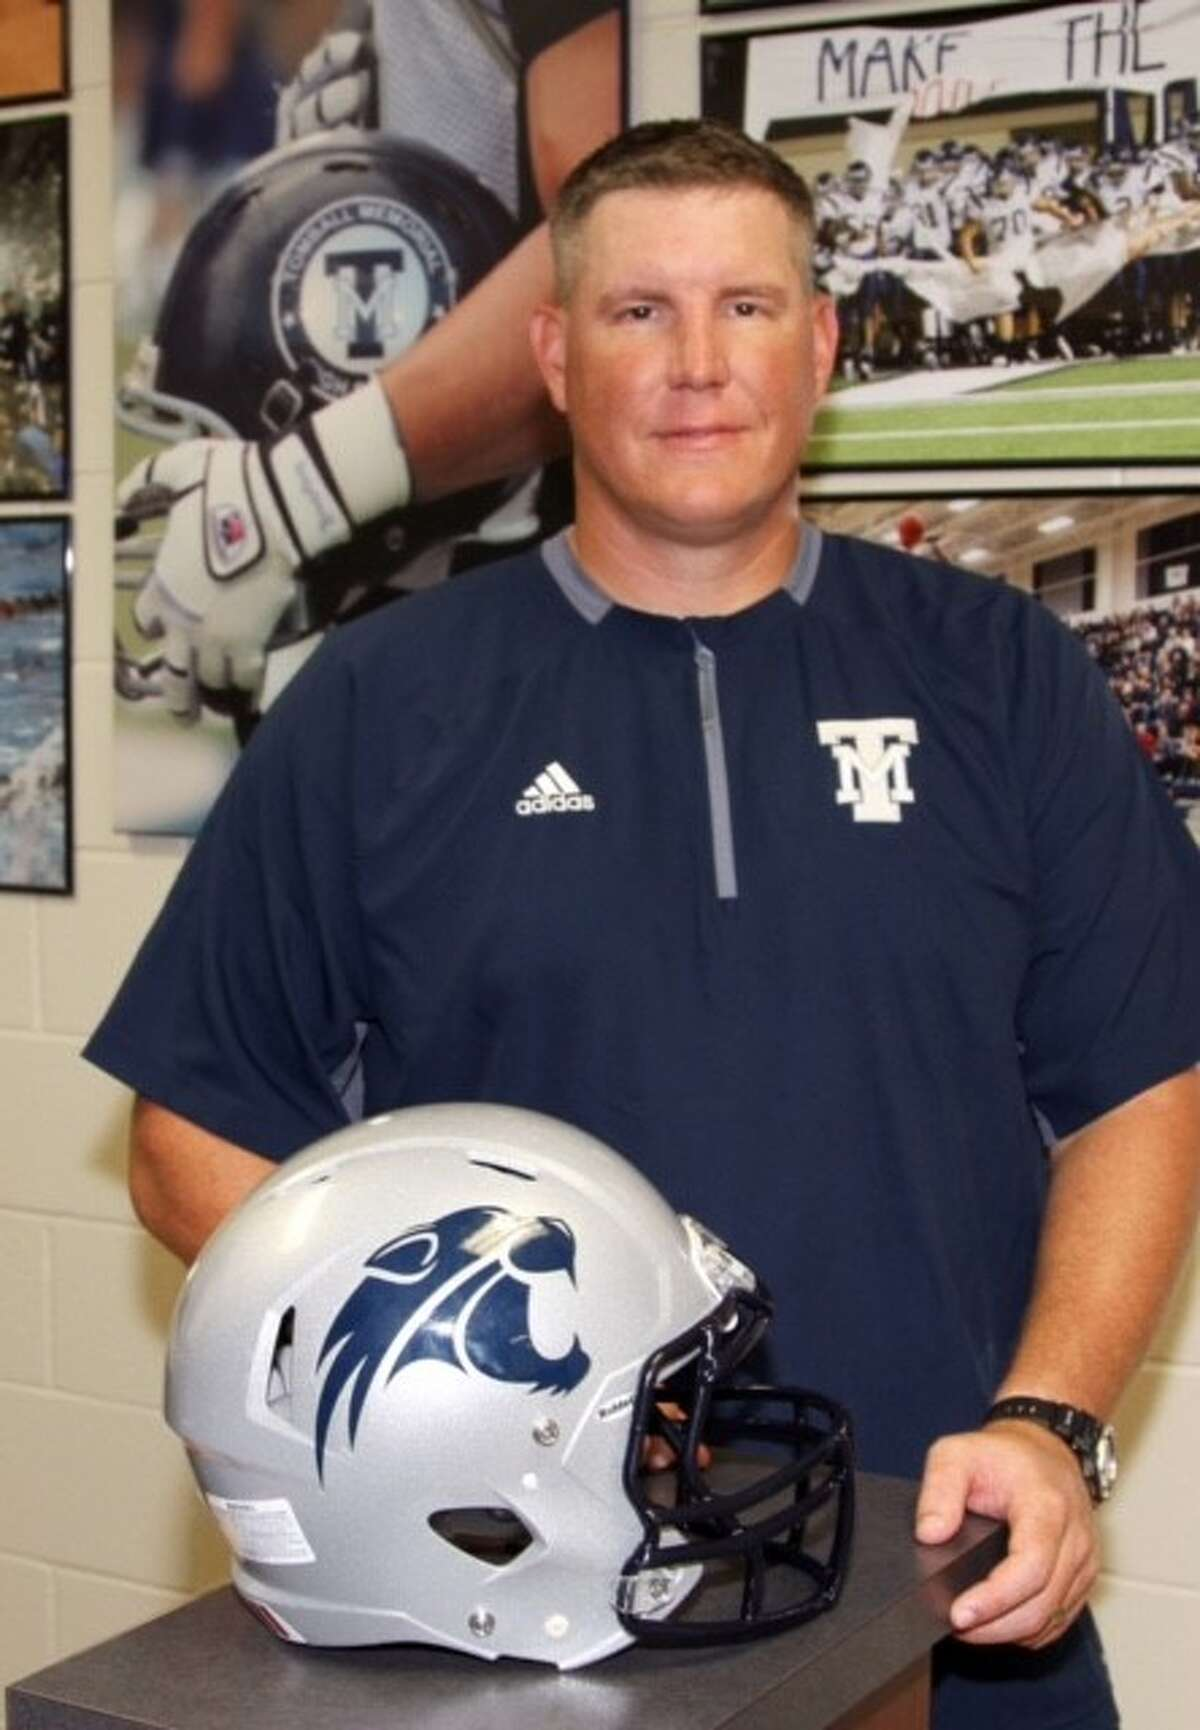 38. Lawrence Parker, Tomball Memorial High School District: Tomball ISD Salary: $103,064